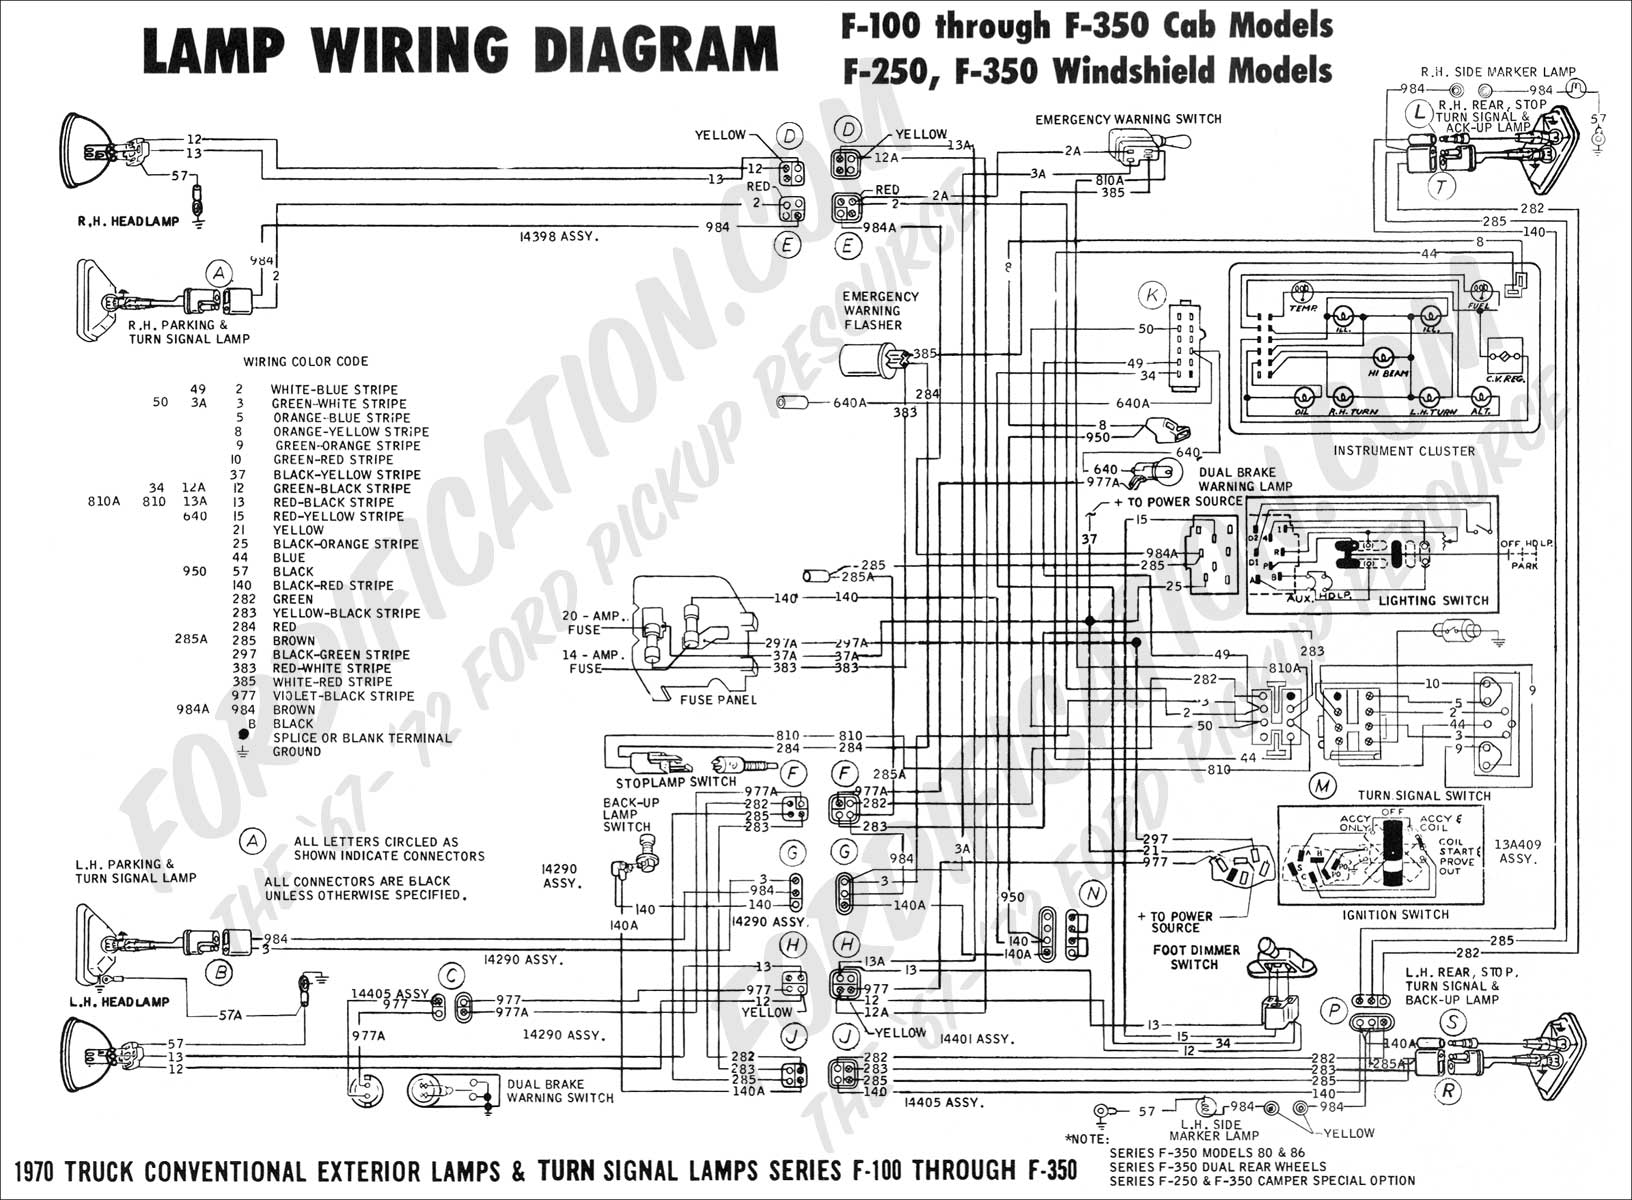 [DIAGRAM_0HG]  C82D 1968 Ford F 250 Alternator Wiring Diagram | Wiring Library | 1996 Ford Alternator Wiring Diagram |  | Wiring Library